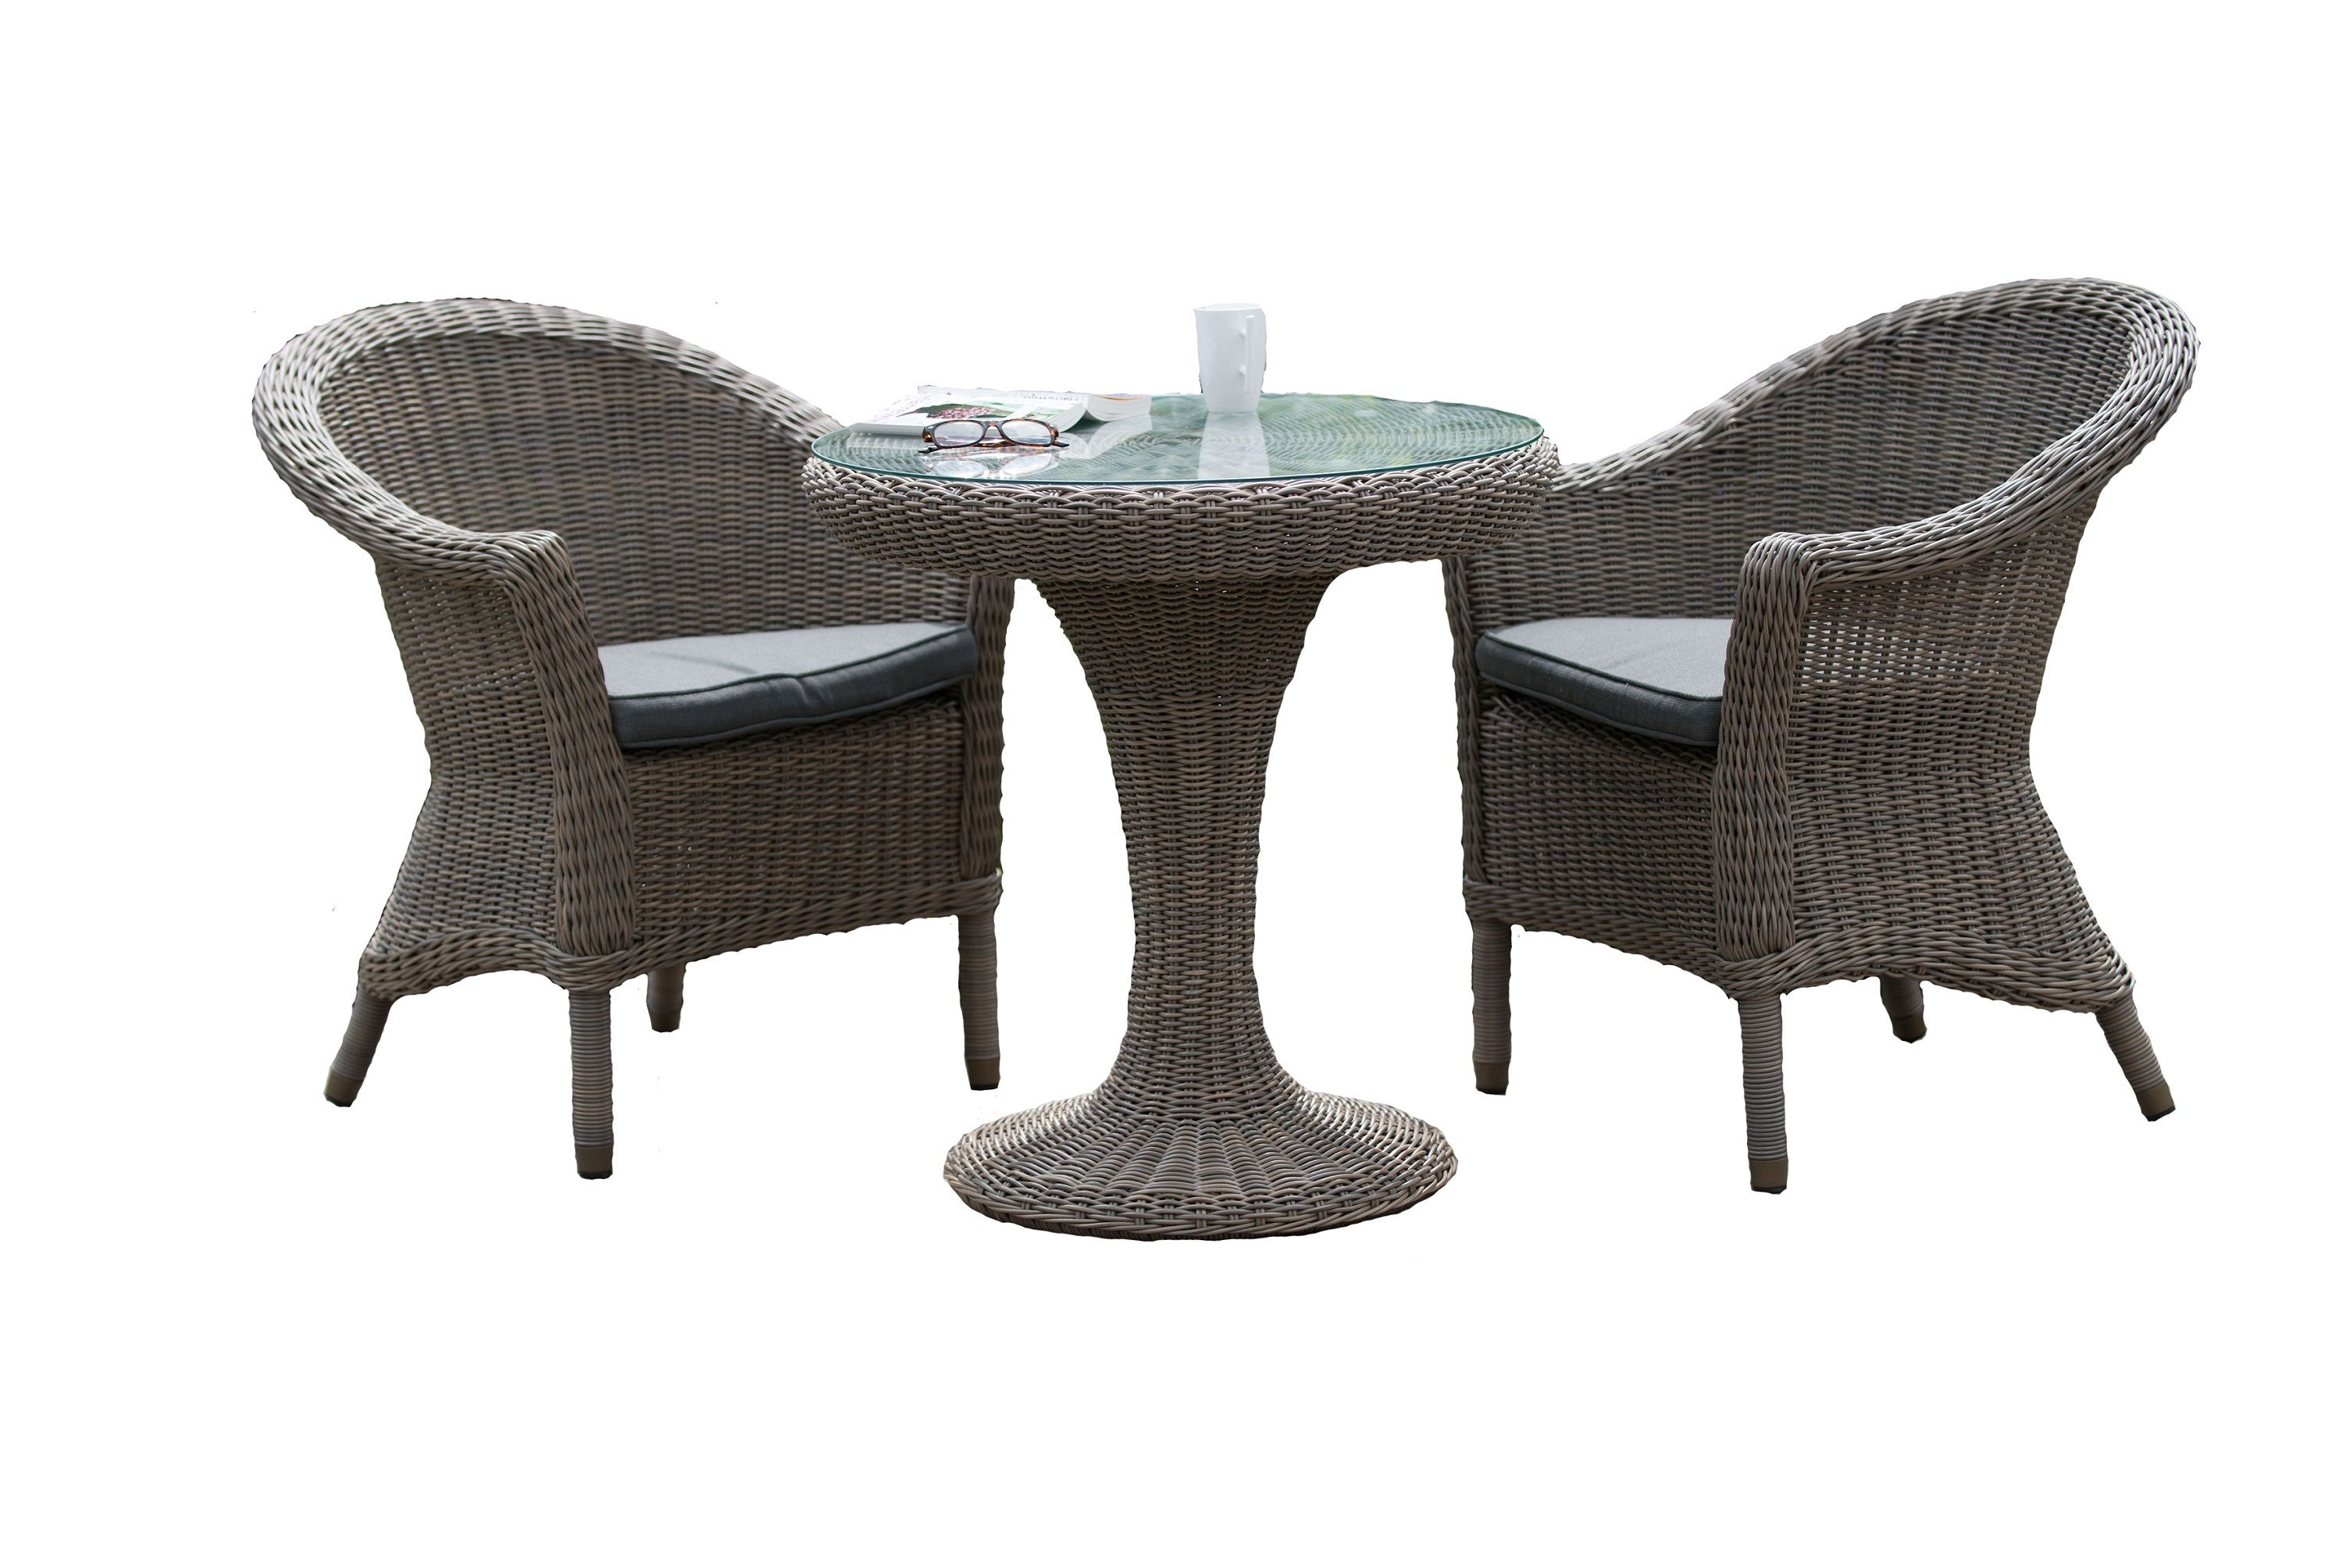 Image of 4 Seasons Outdoor Chester 2 Seater Dining Set